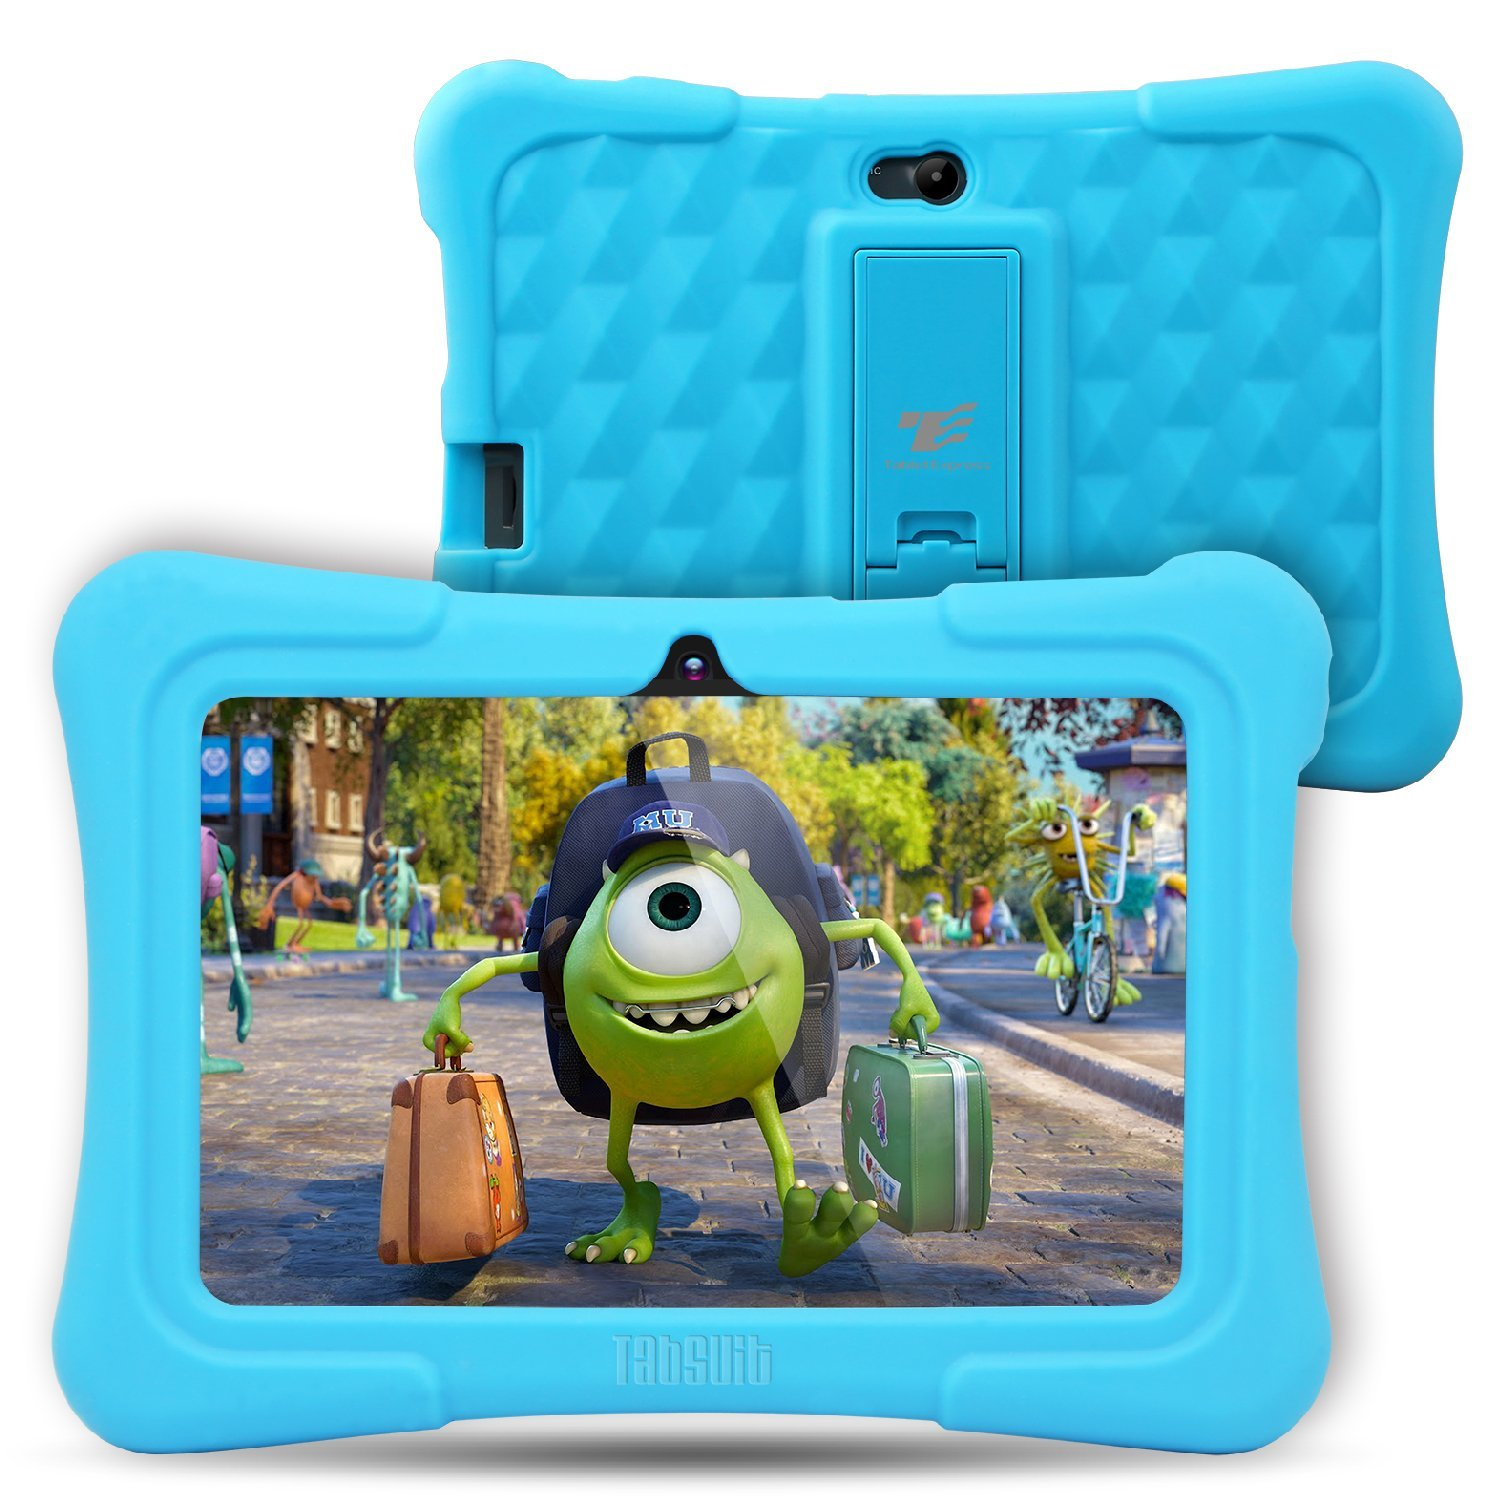 ФОТО Dragon Touch Y88X Plus 7 inch Kids Tablet pcs Quad Core Android 5.1 Lollipop IPS Display Kidoz Pre-Installed Best Christmas gift